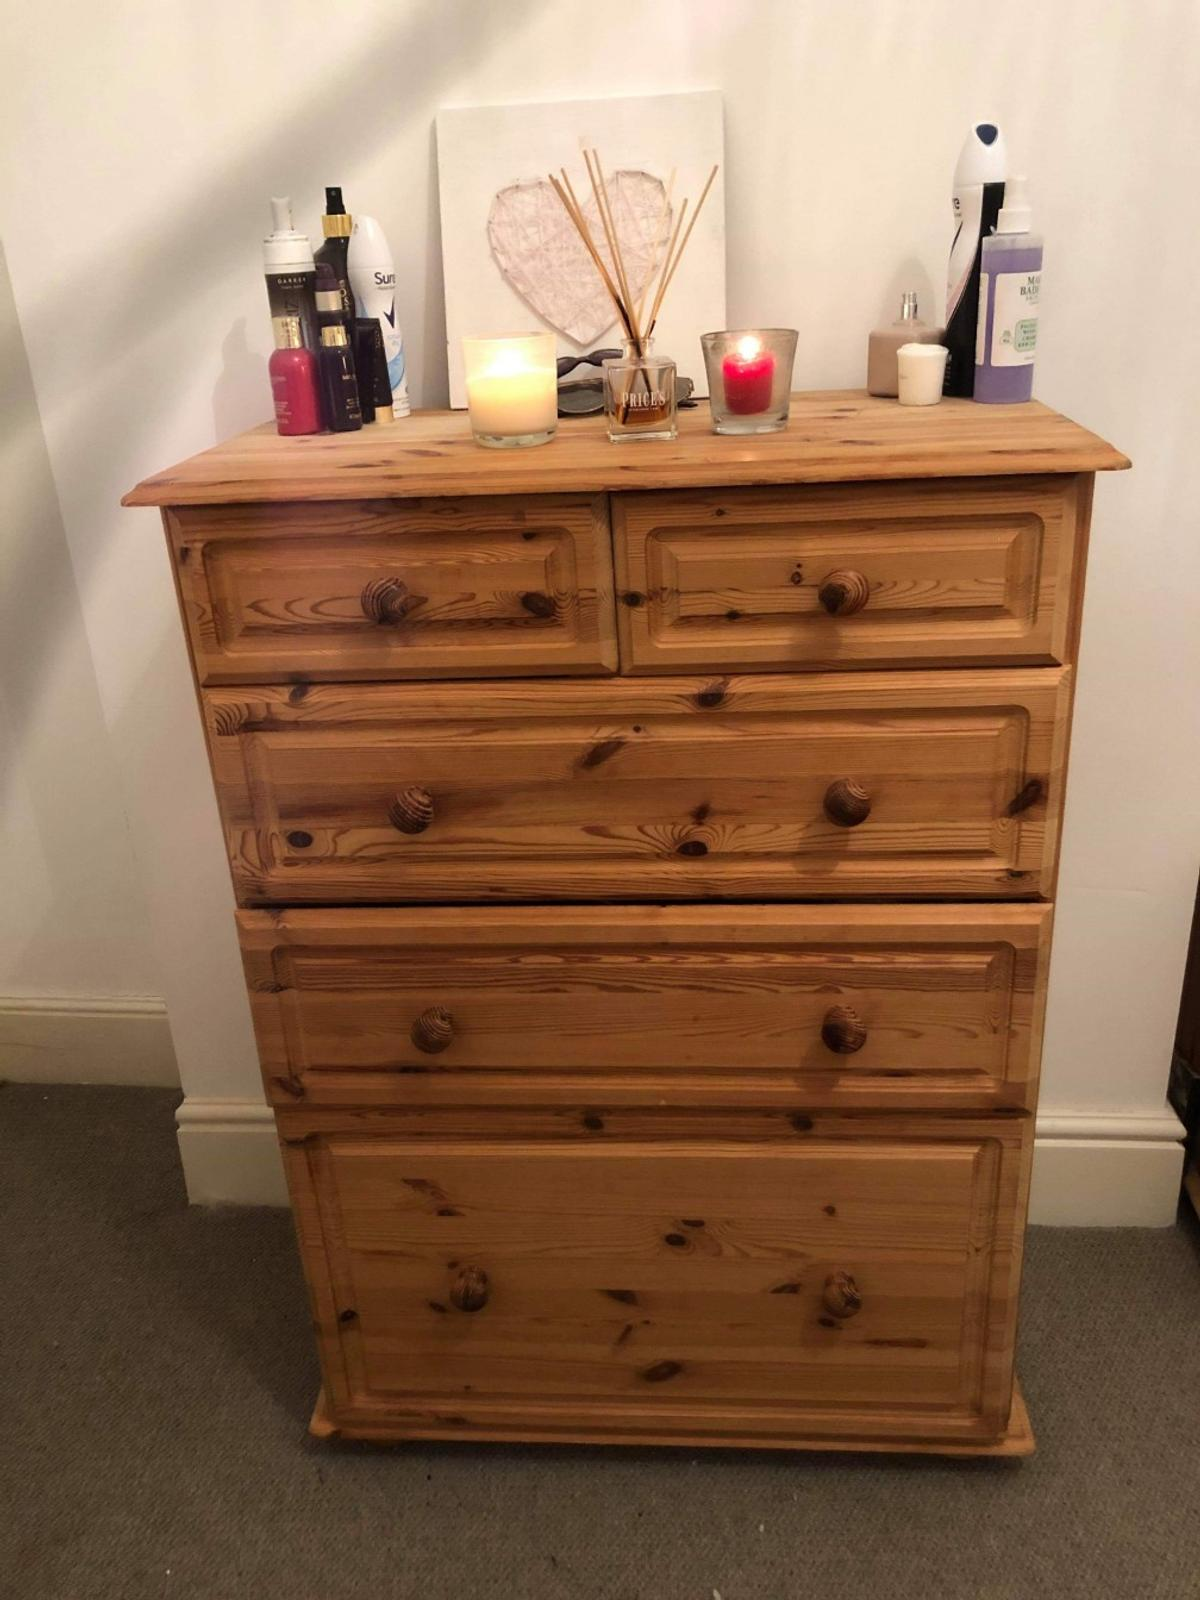 Set of oak chest of drawers  1x 5 drawer 2x bedside tables  Can be sold separately at £80 for the 5 drawer chest and £40 for both bedside tables